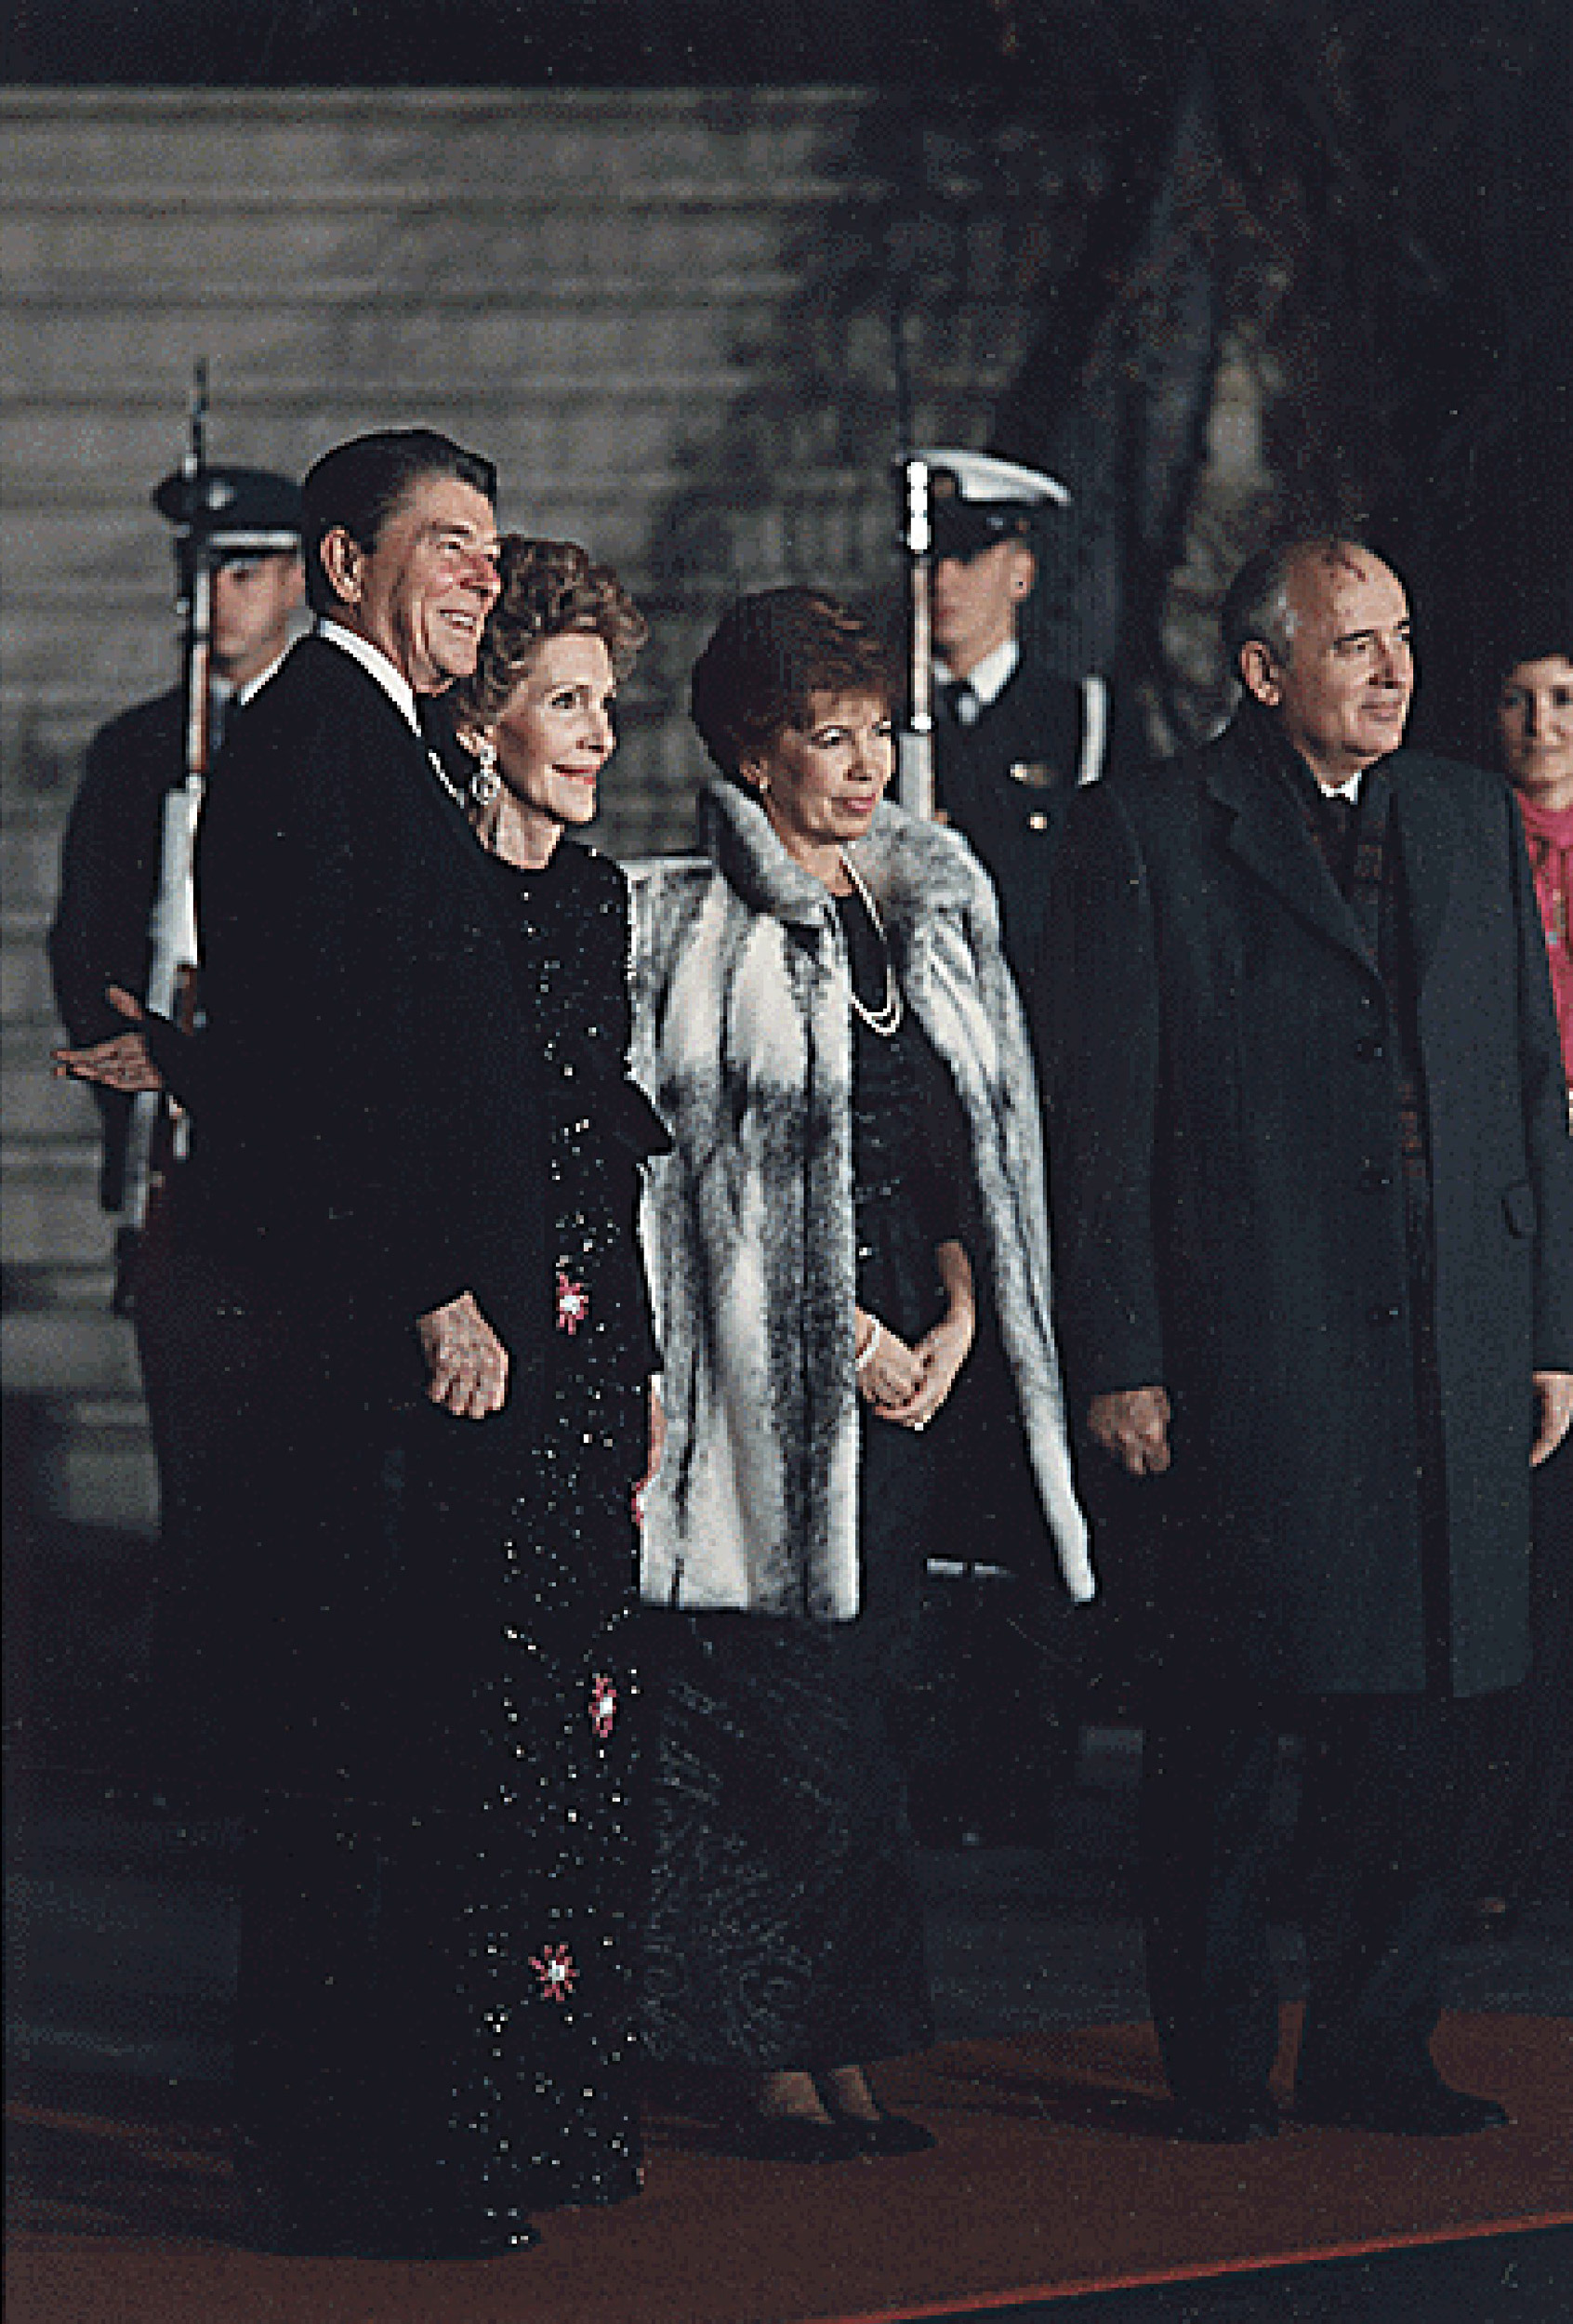 President Ronald Reagan and First Lady Nancy Reagan welcome USSR General Secretary Mikhail Gorbachev and his wife, Raisa, to the White House for a State Dinner in their honor. Dec. 8, 1987.